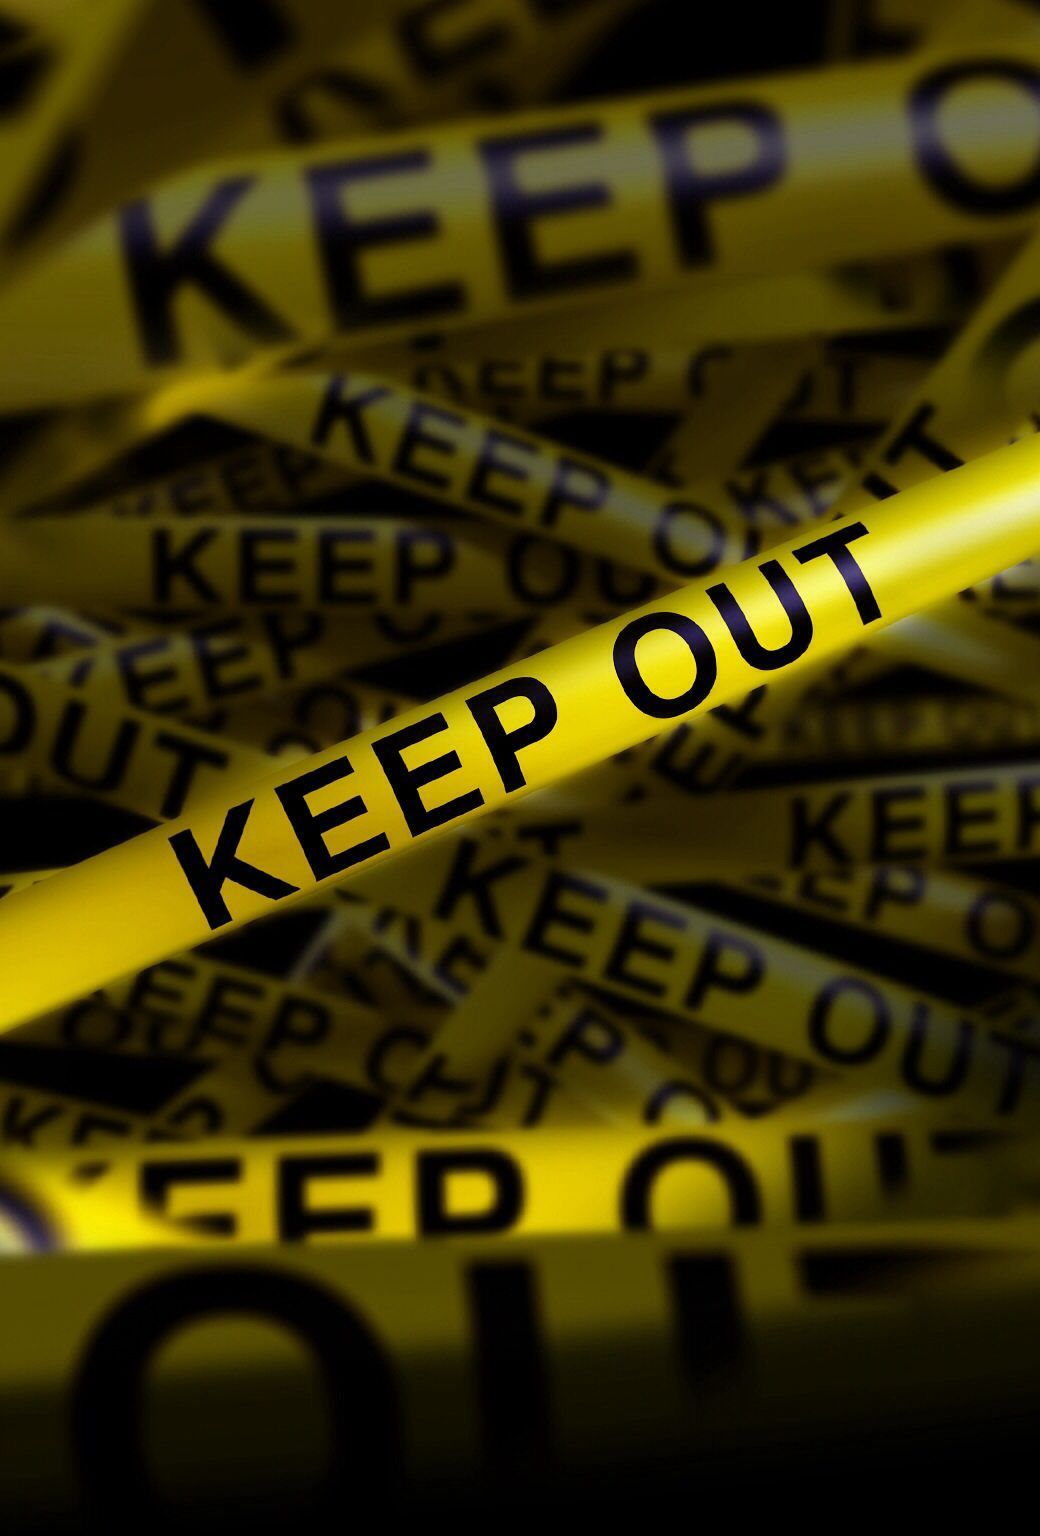 1040x1536 police tape. keep out. Wallpaper iPhone background lock screen ...